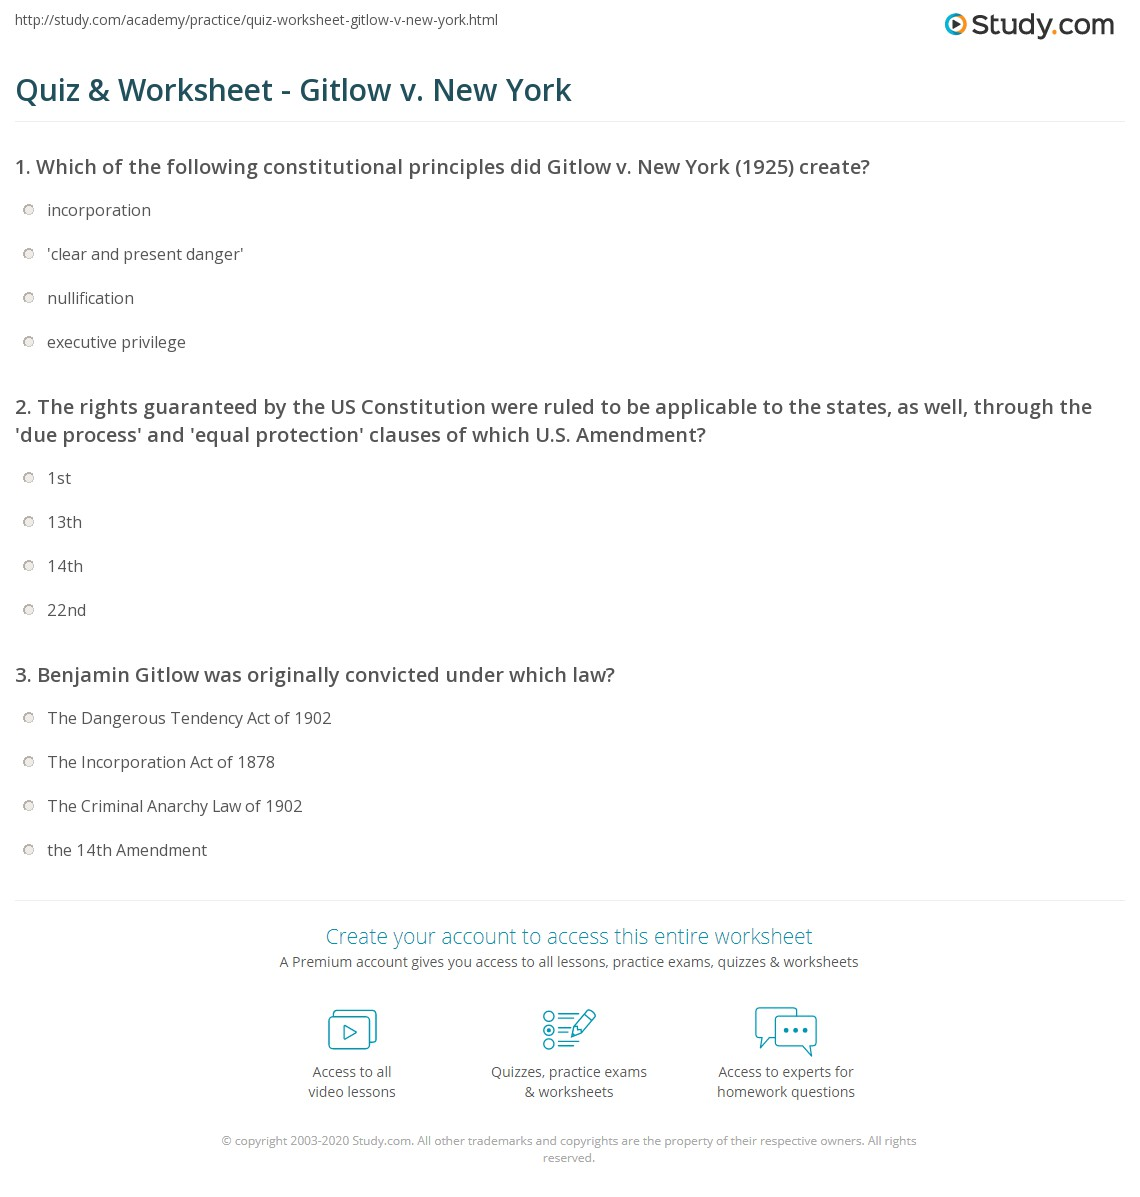 Quiz & Worksheet - Gitlow V. New York